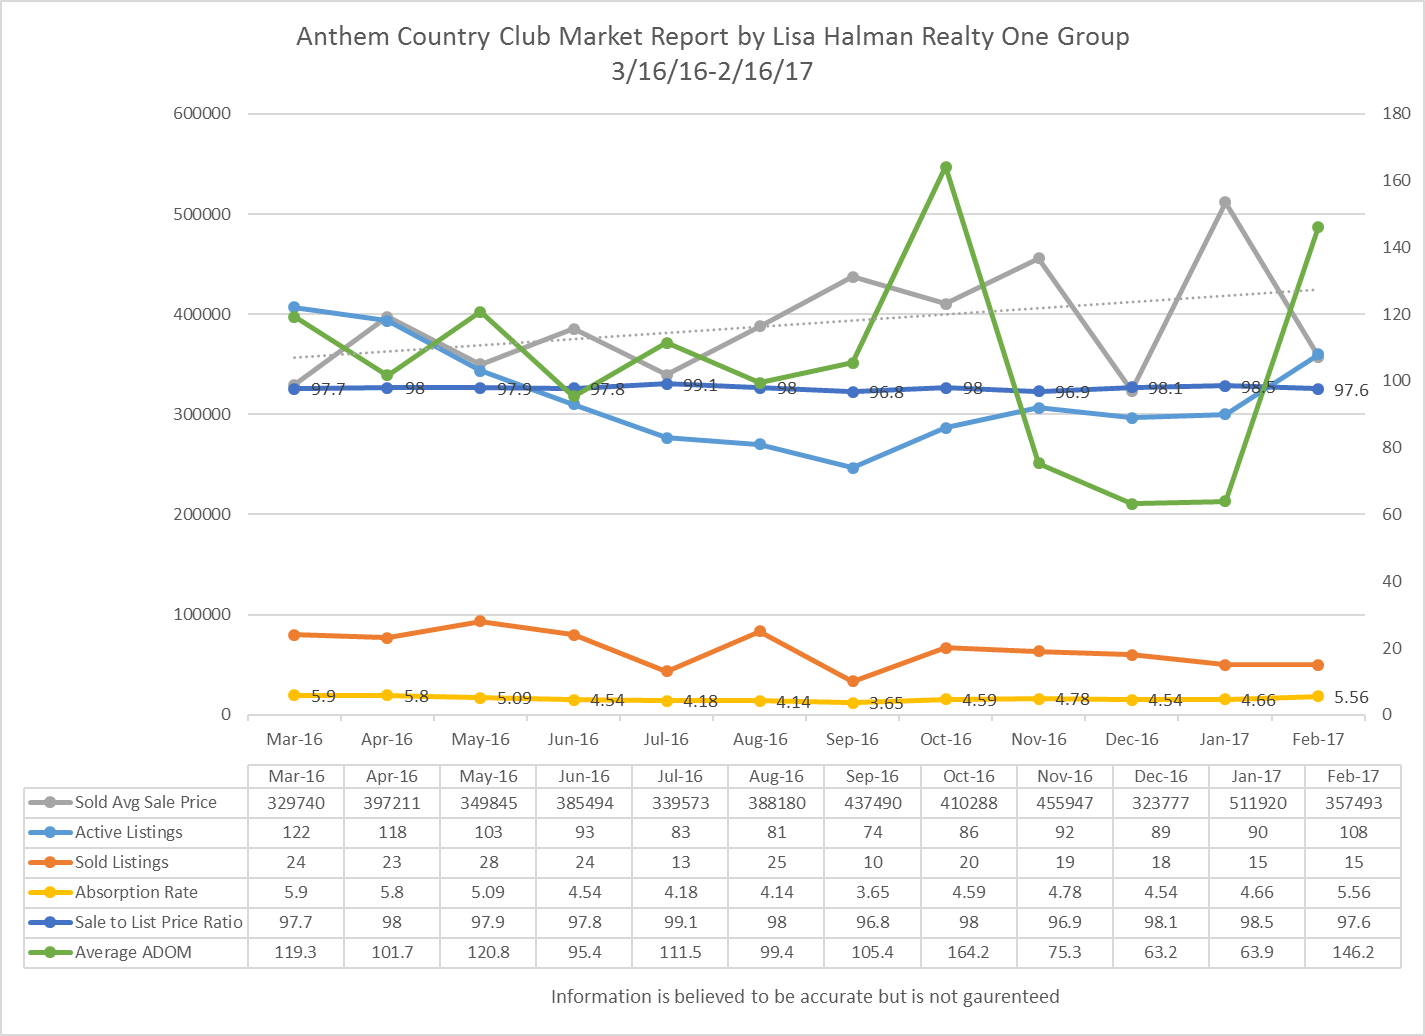 Anthem Country Club Market Report February 2017